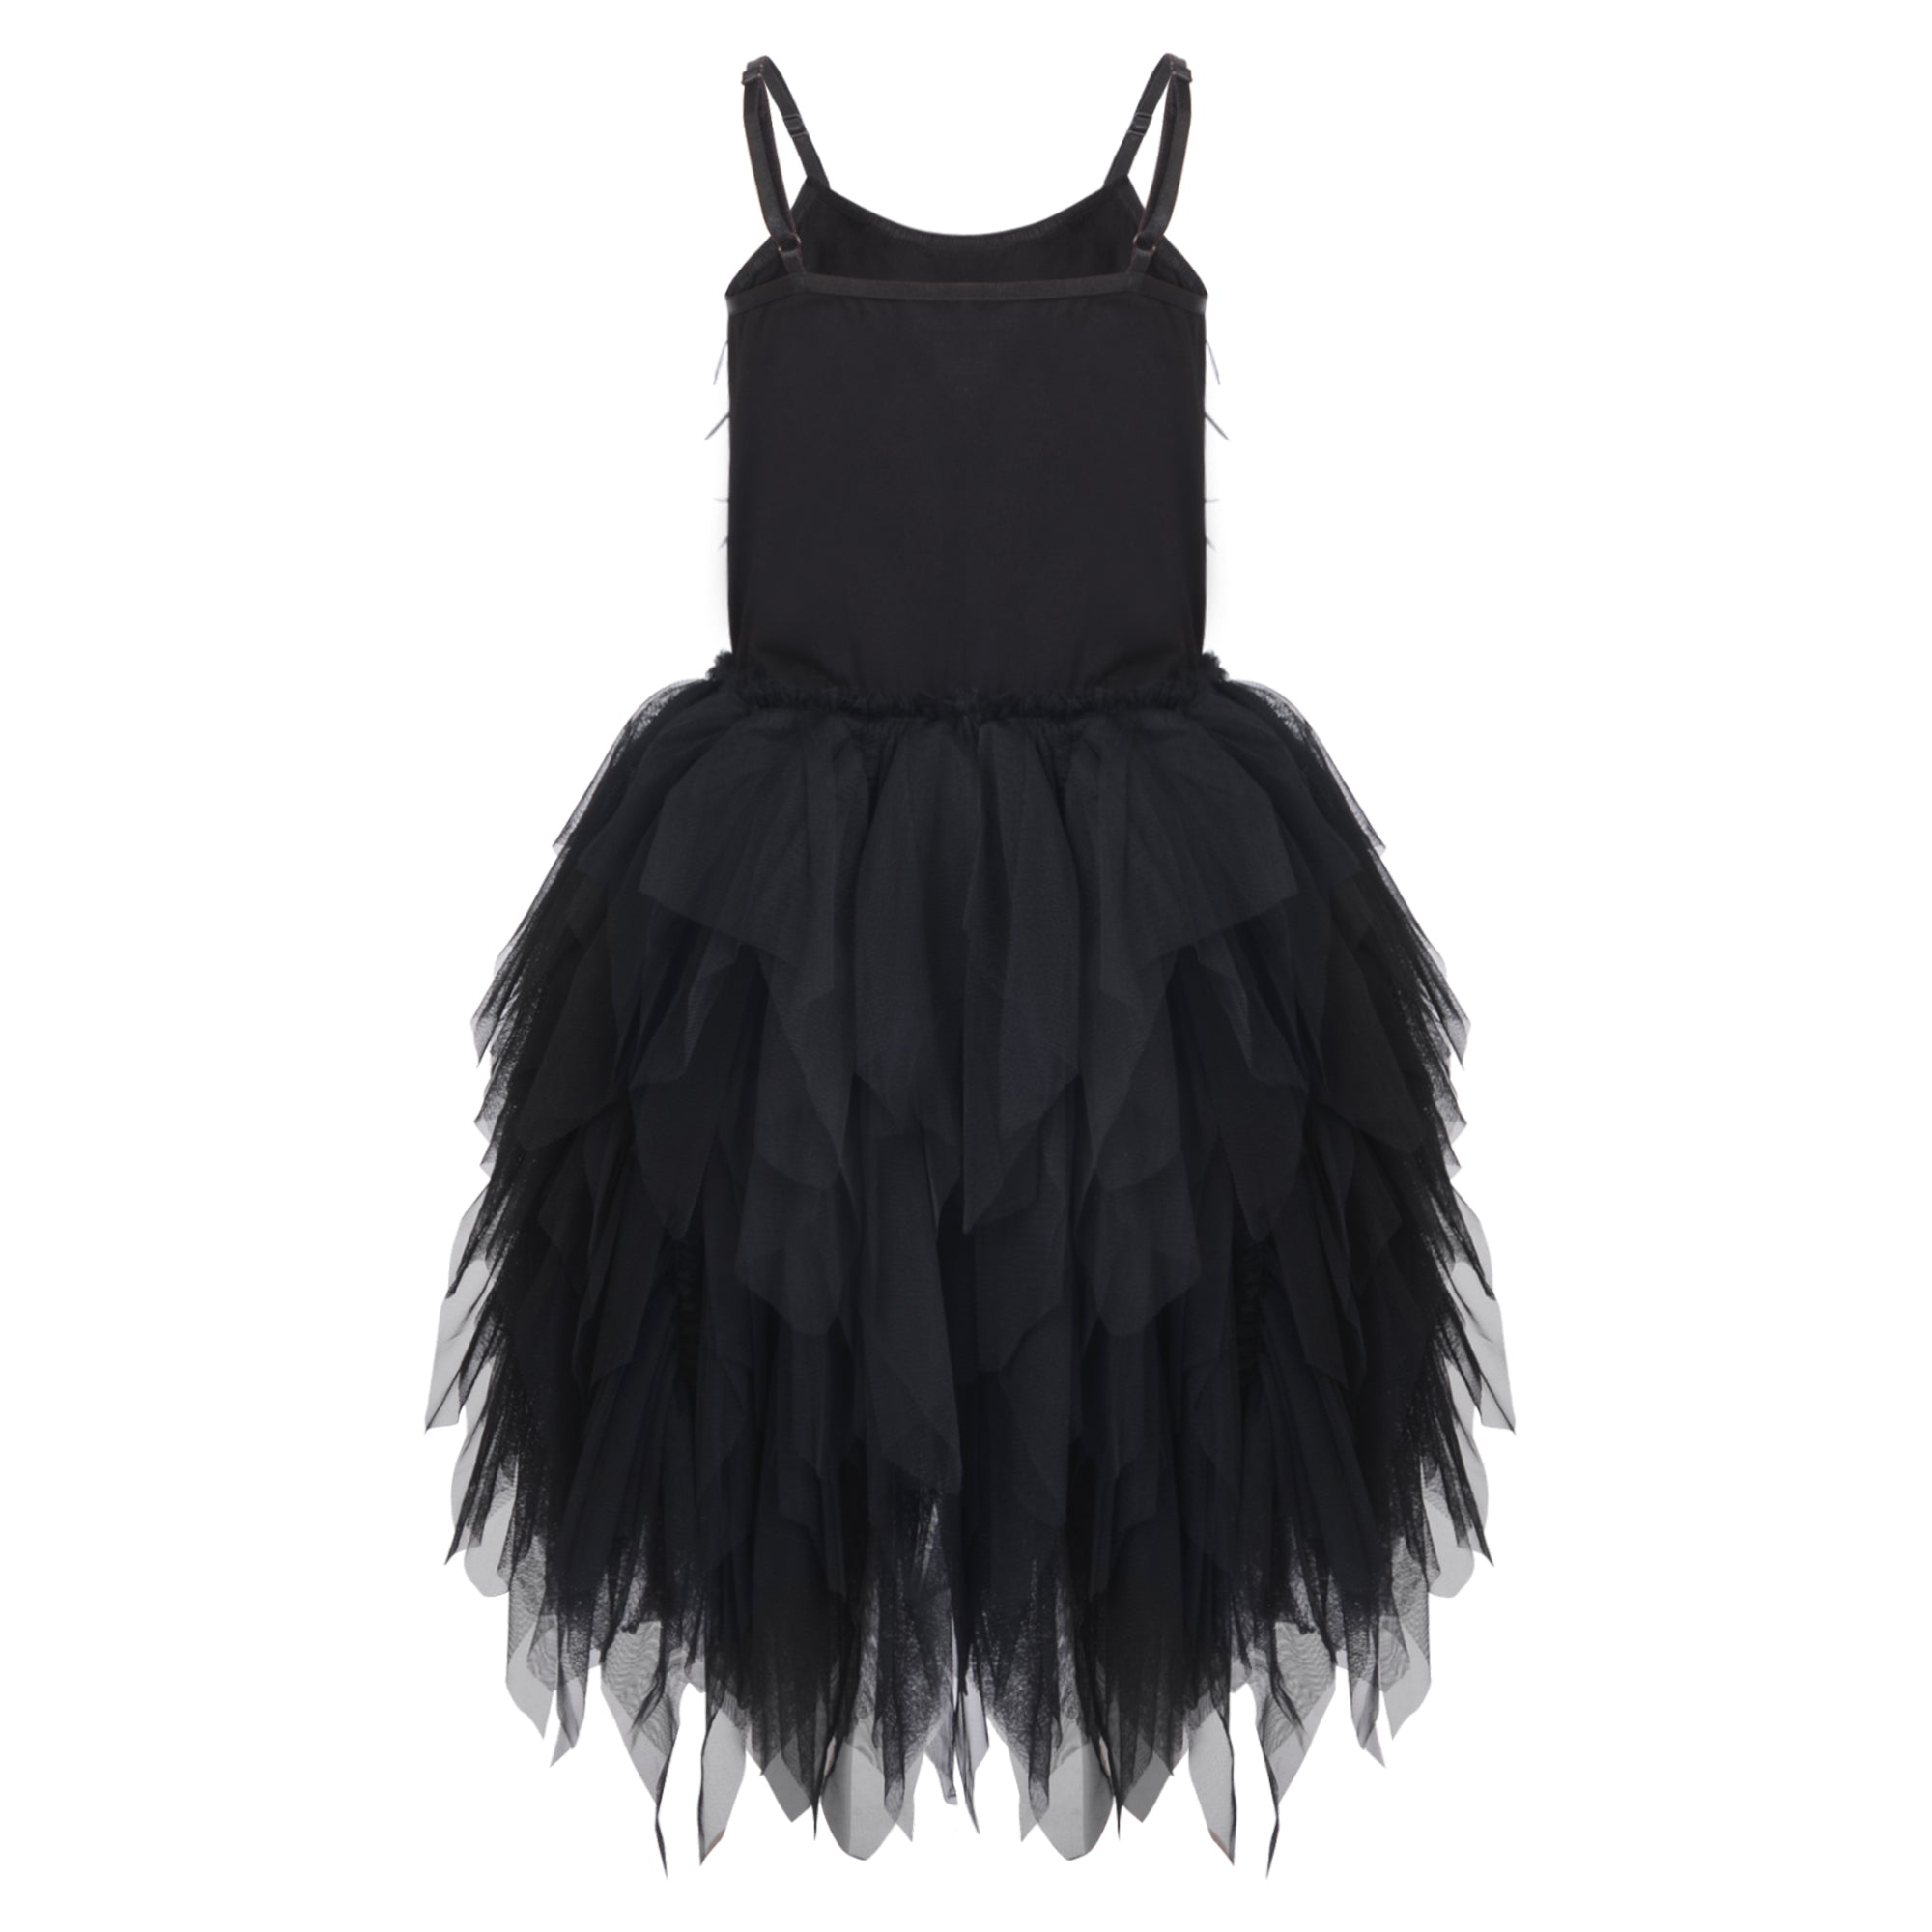 Frilly and Feathers - Midnight